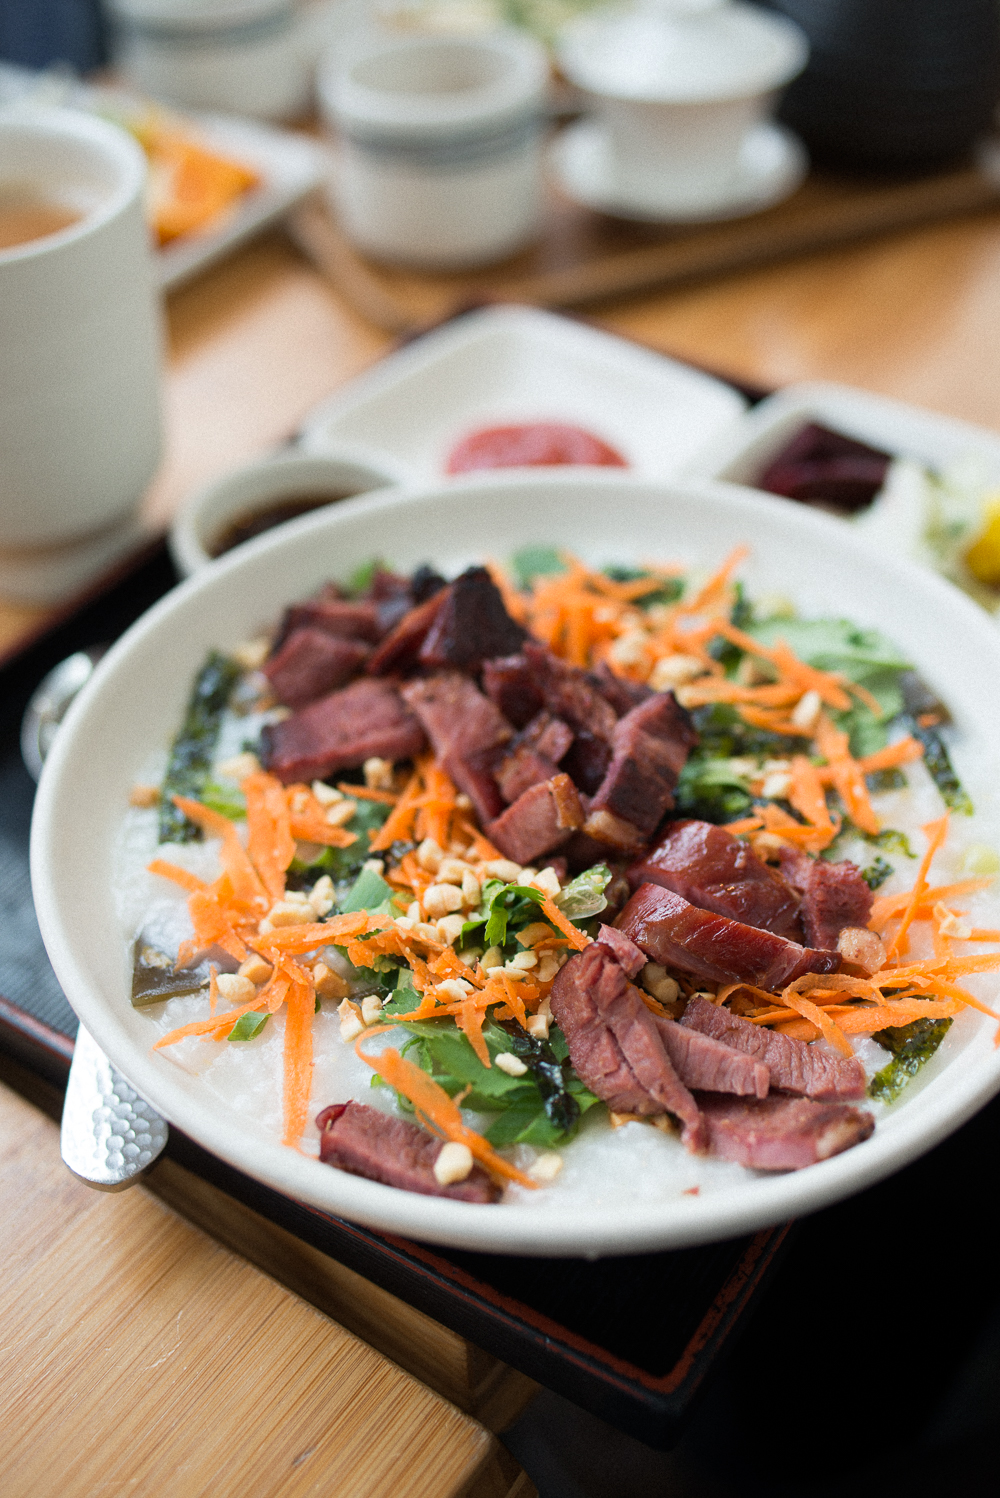 SMOKED DUCK JOOK (Chinese rice porridge) - White rice porridge with toppings (peanuts, nori, cilantro, carrots, ginger, scallions), sriracha and tamari soy.